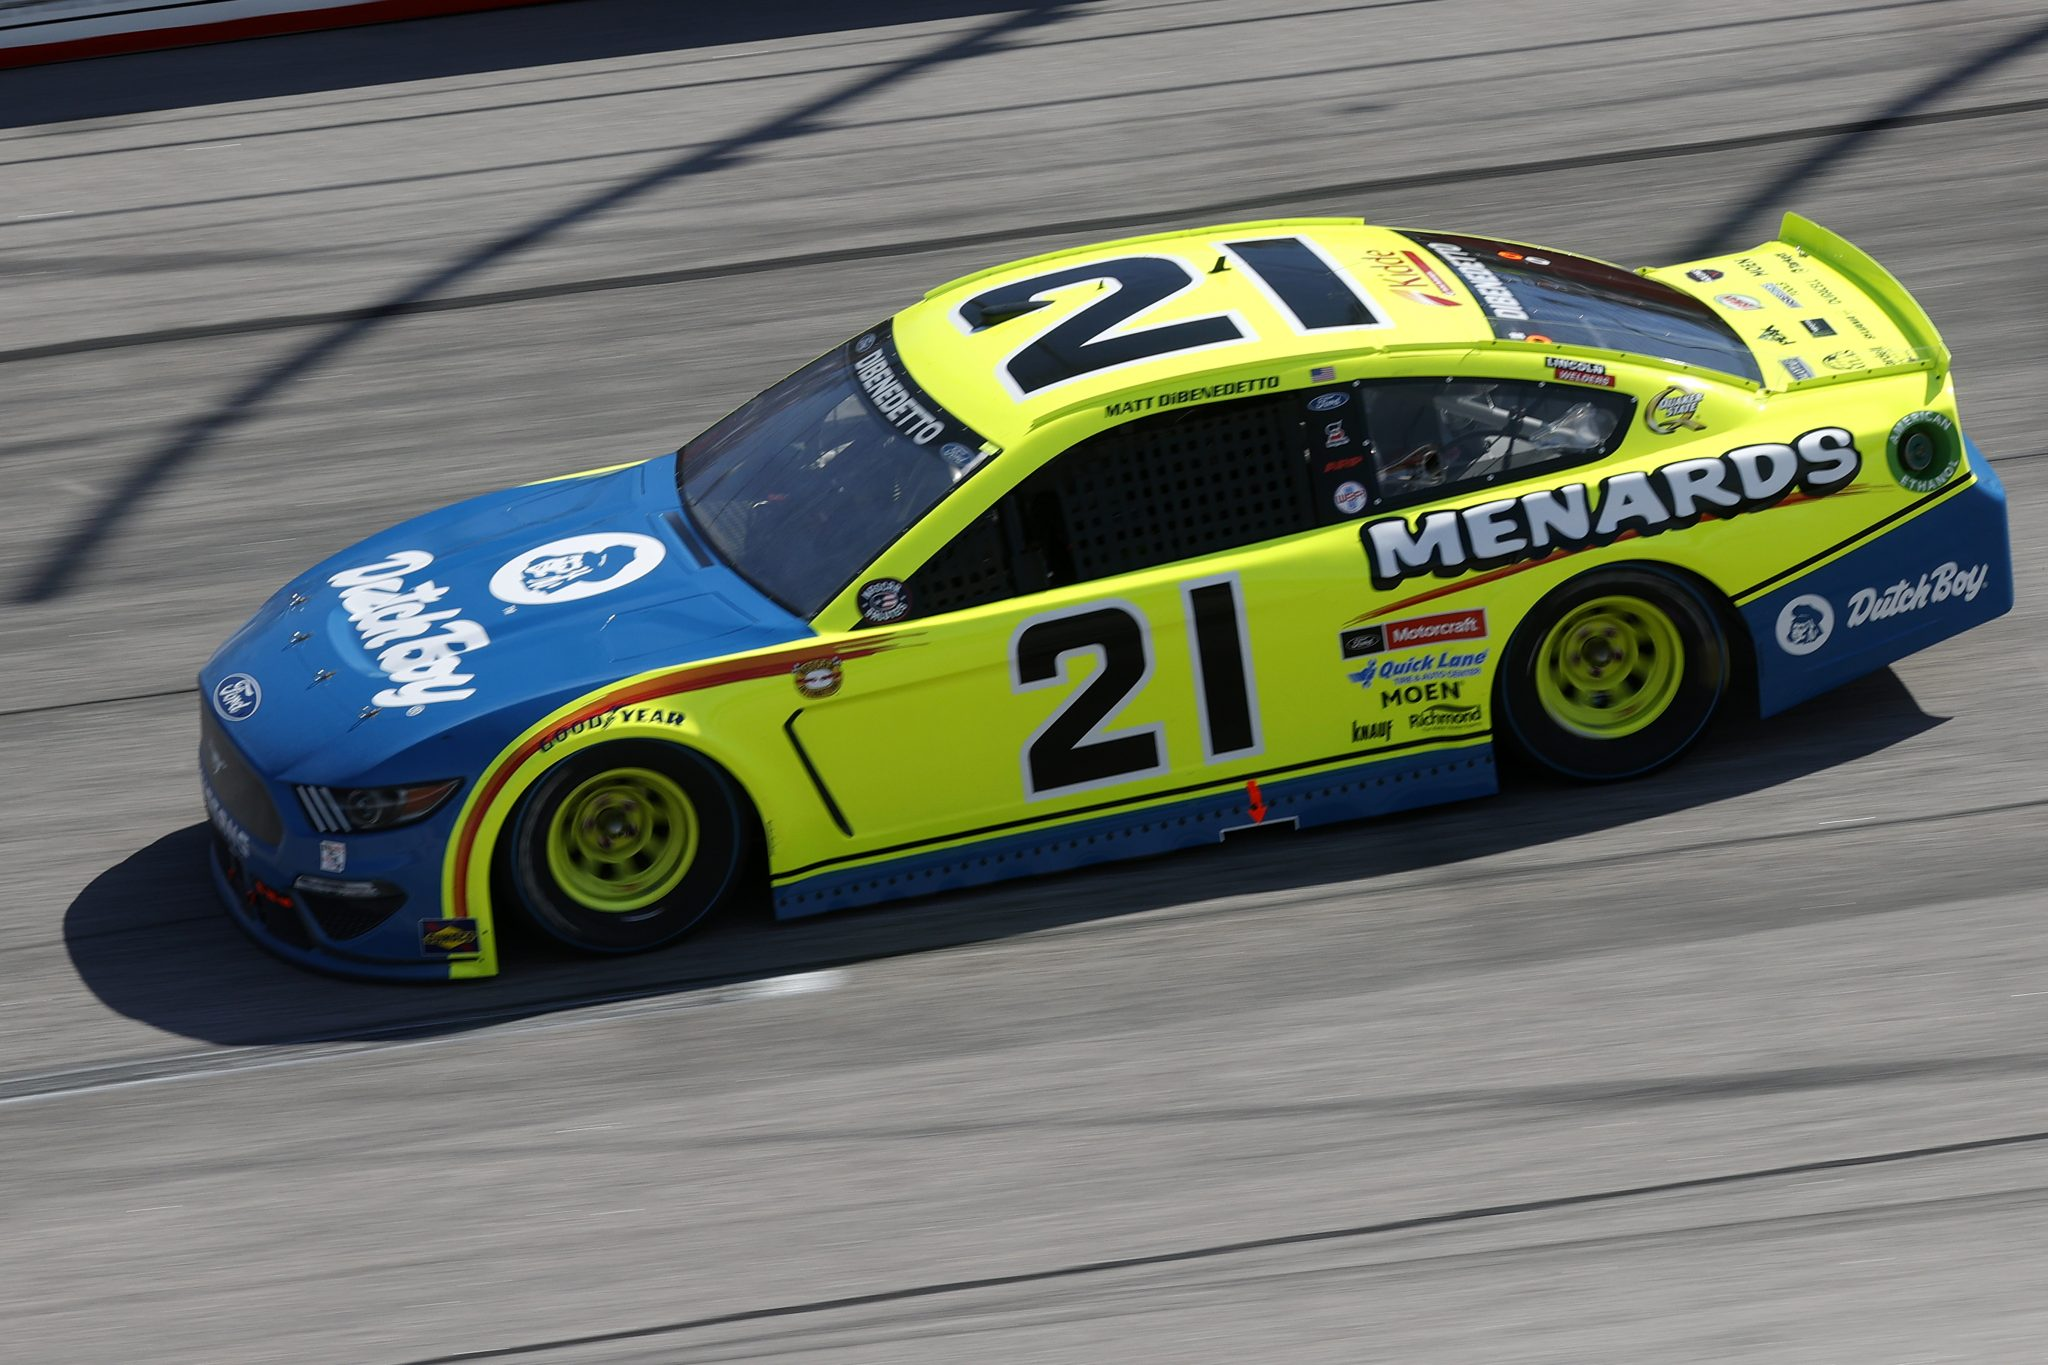 DARLINGTON, SOUTH CAROLINA - MAY 09: Matt DiBenedetto, driver of the #21 Menards/Dutch Boy Ford, drives during the NASCAR Cup Series Goodyear 400 at Darlington Raceway on May 09, 2021 in Darlington, South Carolina. (Photo by Chris Graythen/Getty Images) | Getty Images